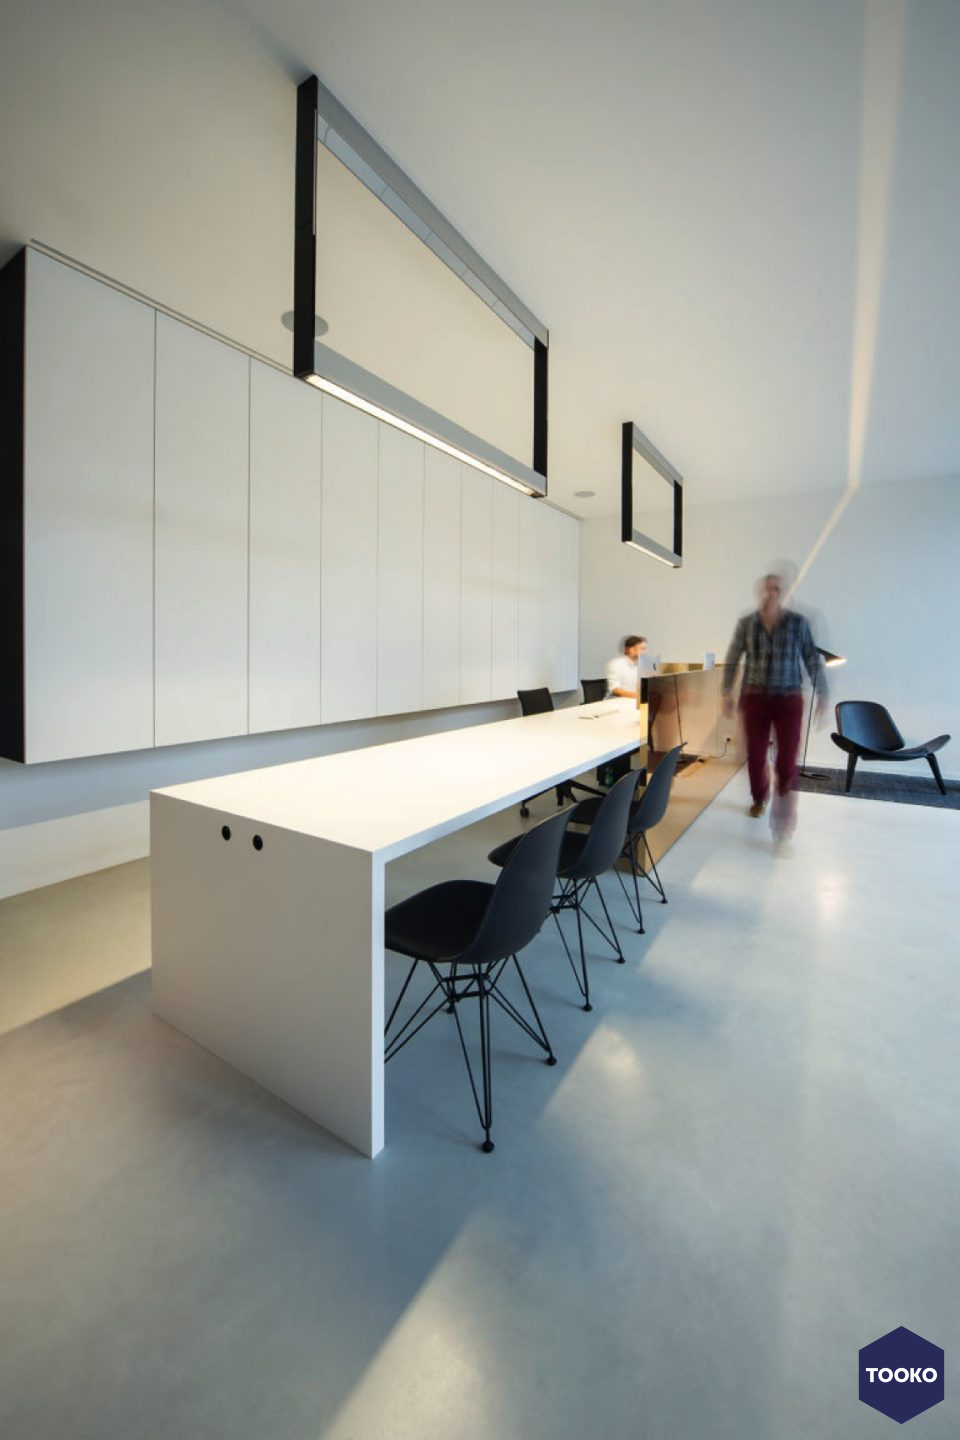 imore interieur architectuur - Office Imore